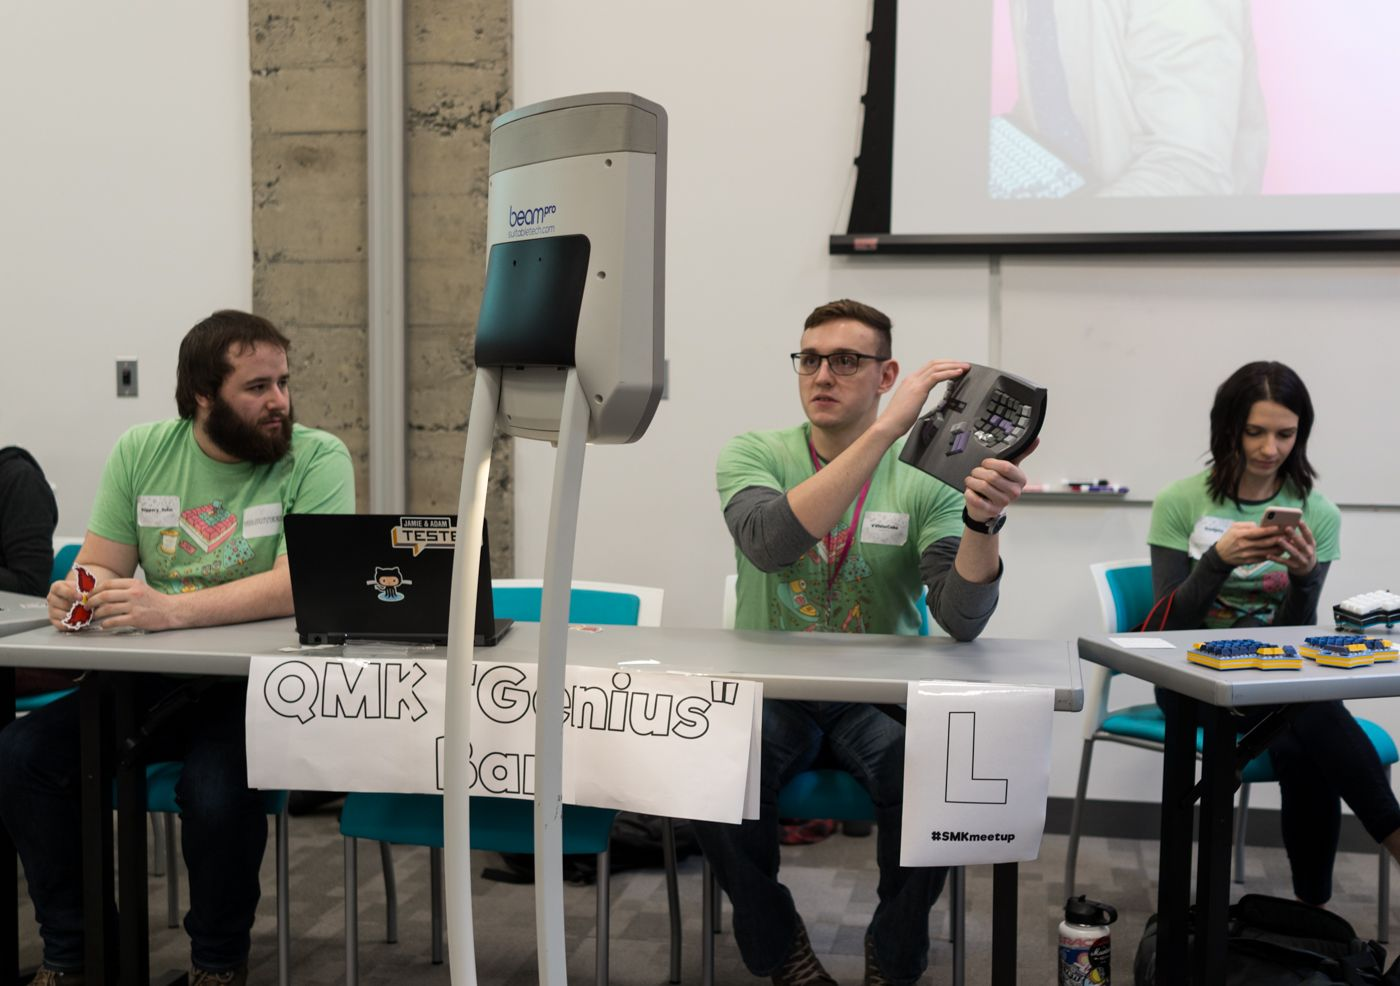 My favorite photo I took at the meetup. There's a comical seriousness to someone holding up a keyboard to show a robot.